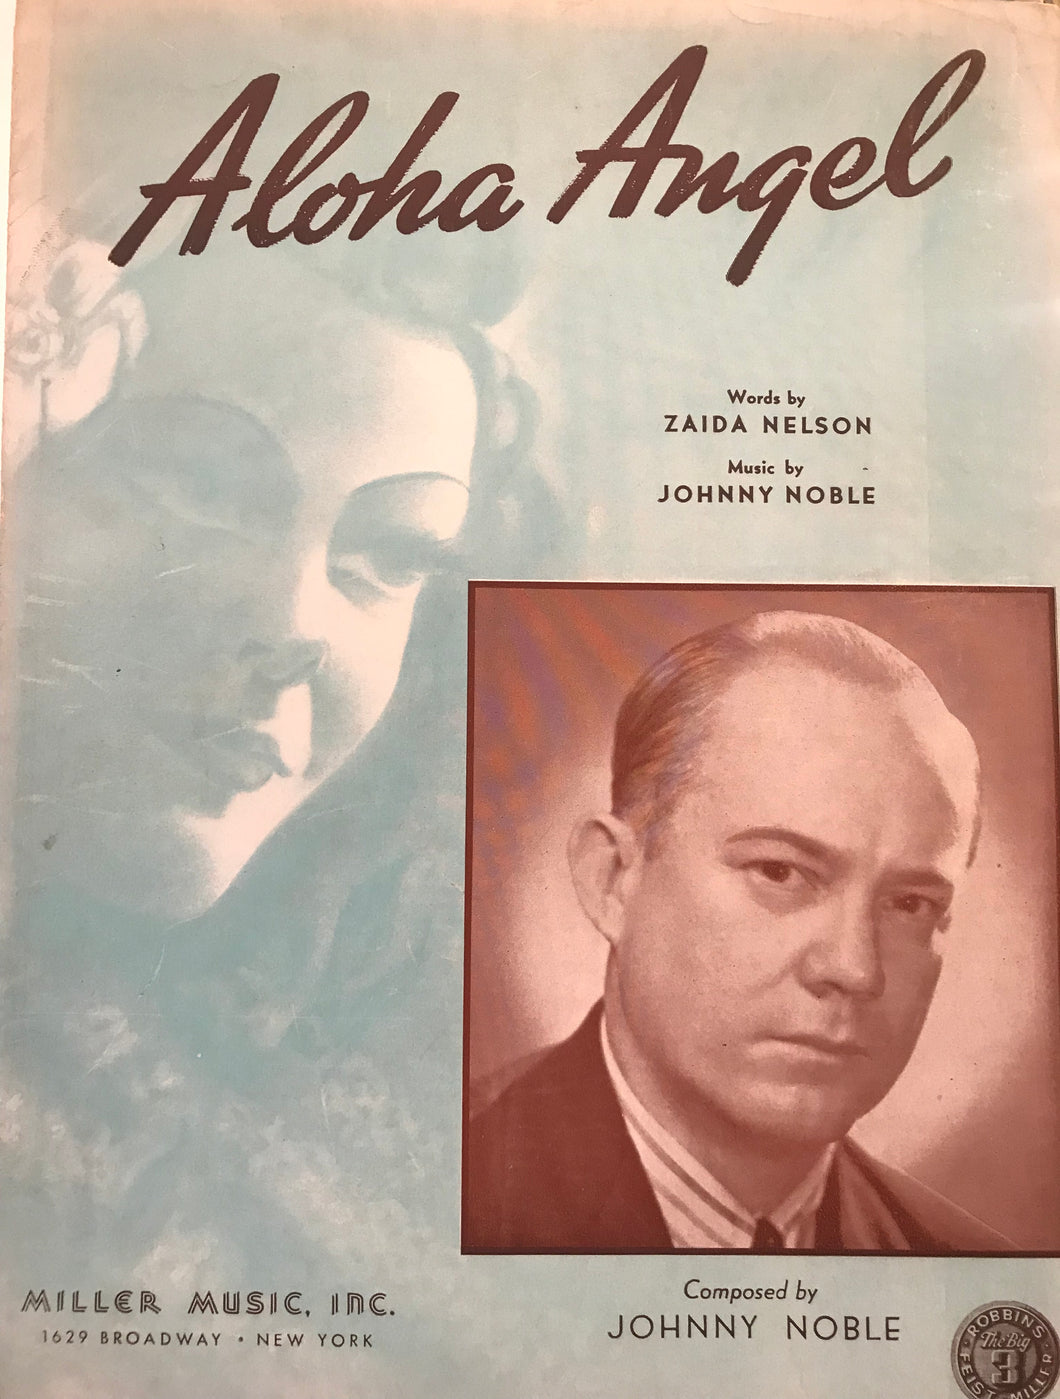 Hawaiian Sheet Music: 'Aloha Angel'